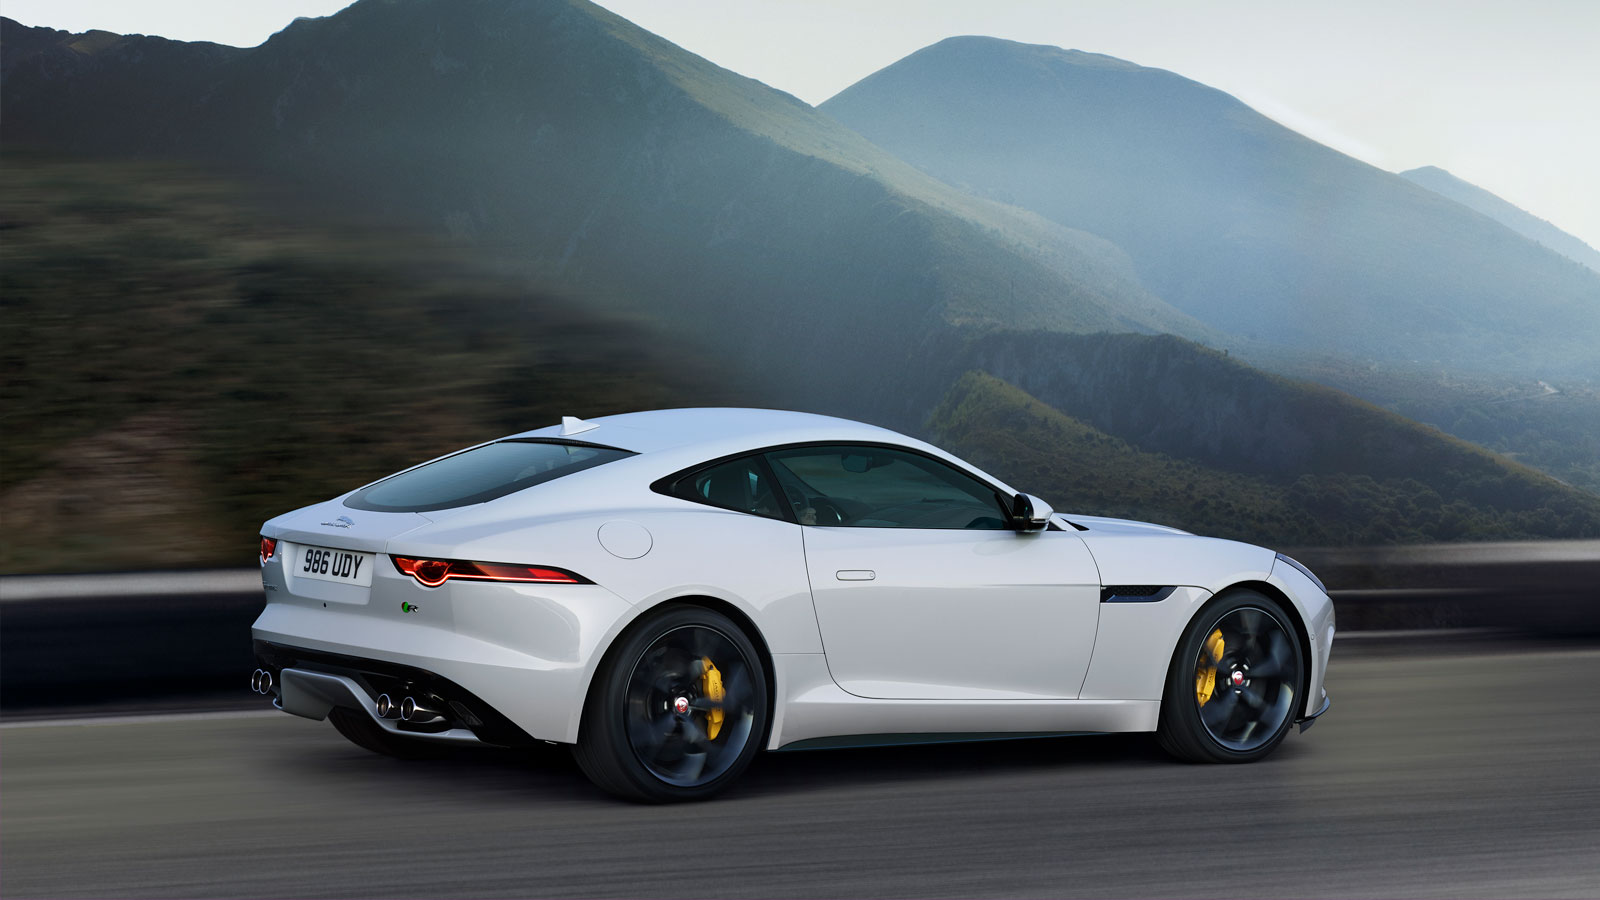 F Type Coupe >> Jaguar F Type 2 0 Chequered Flag Special Editions 3 0 Automatic 2 Door Coupe 19my At Jaguar Barnet